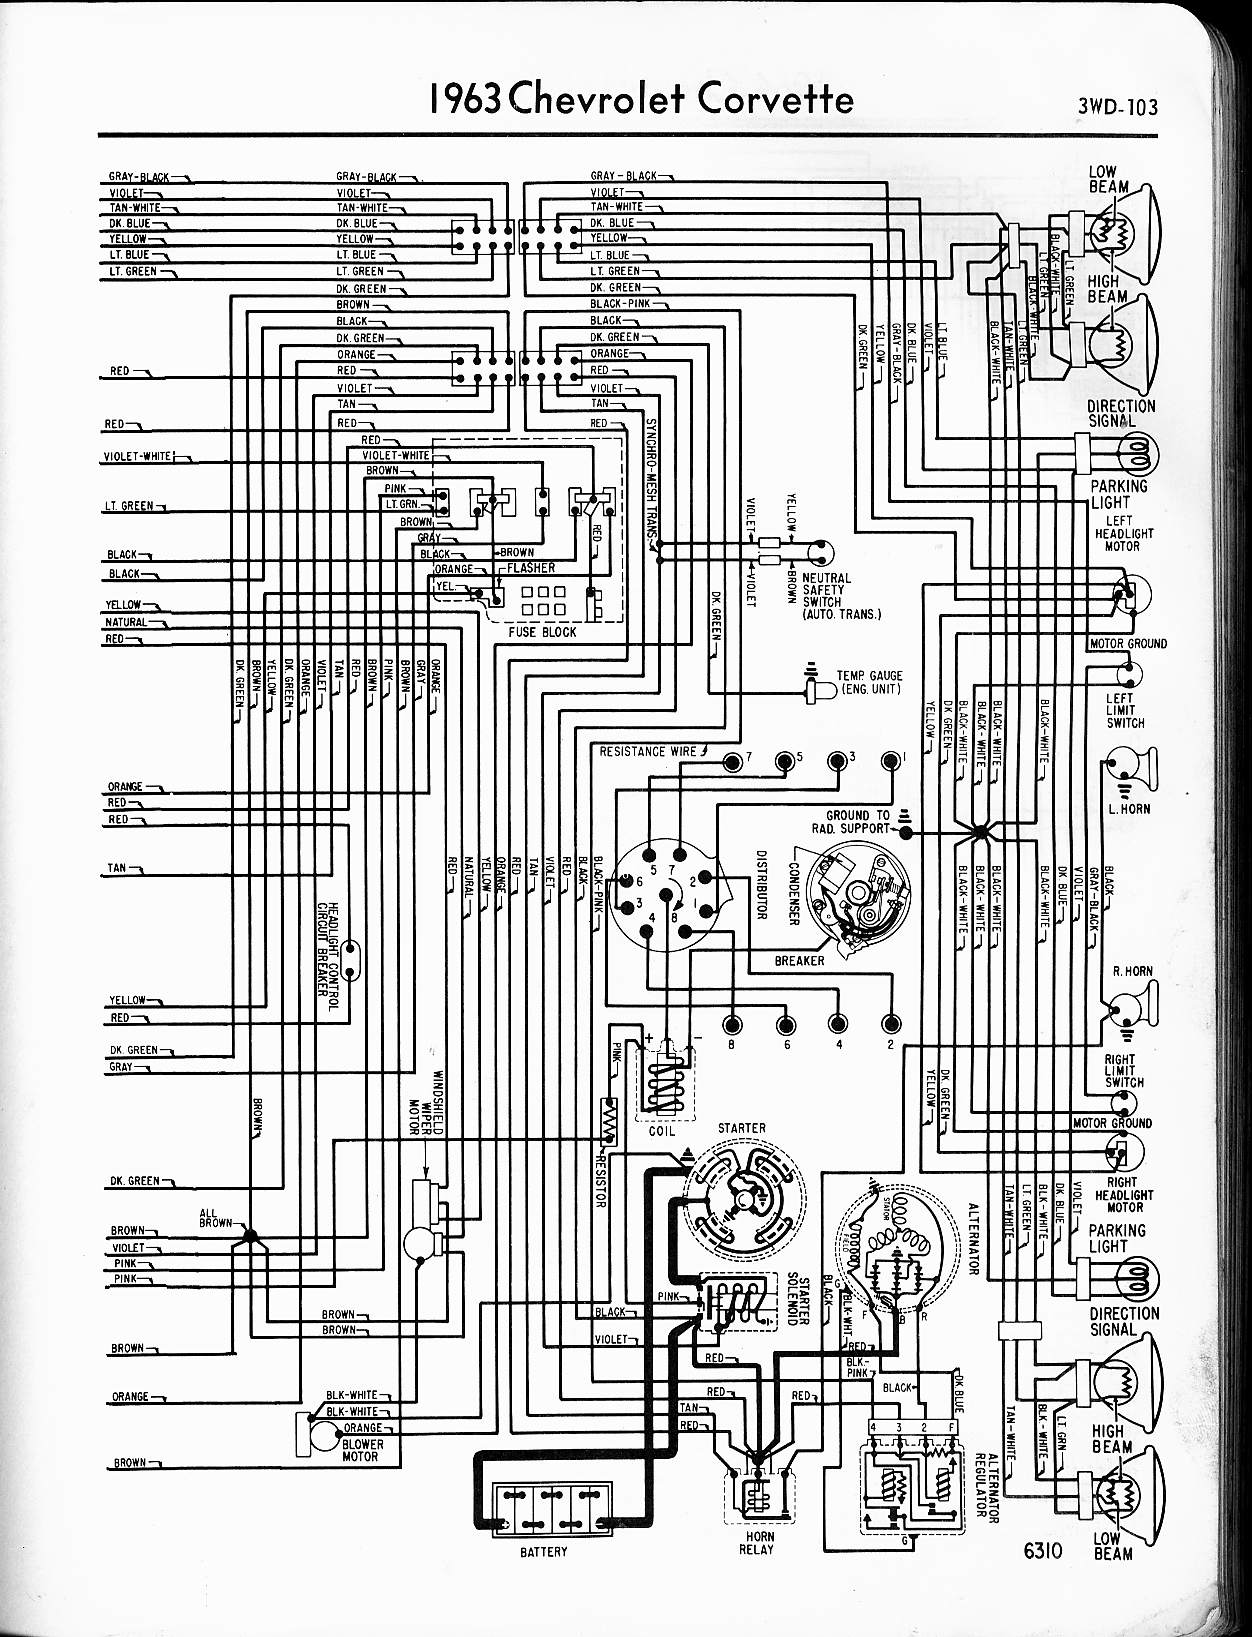 MWireChev63_3WD 103 57 65 chevy wiring diagrams 1971 corvette wiring diagram at panicattacktreatment.co